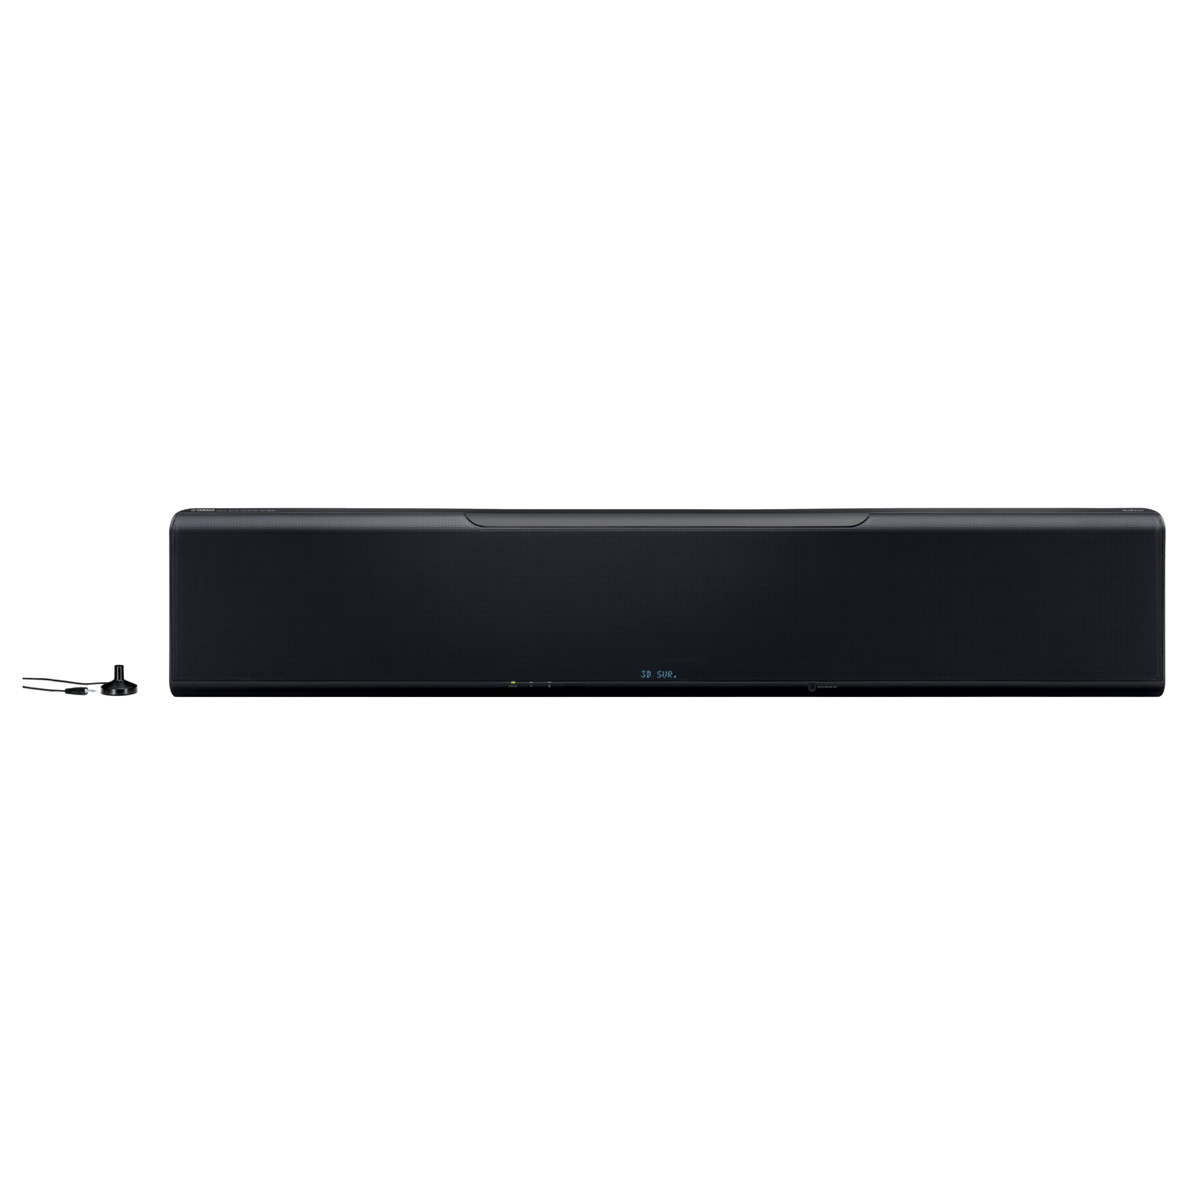 yamaha ysp 5600 musiccast sound bar with dolby atmos dts x. Black Bedroom Furniture Sets. Home Design Ideas